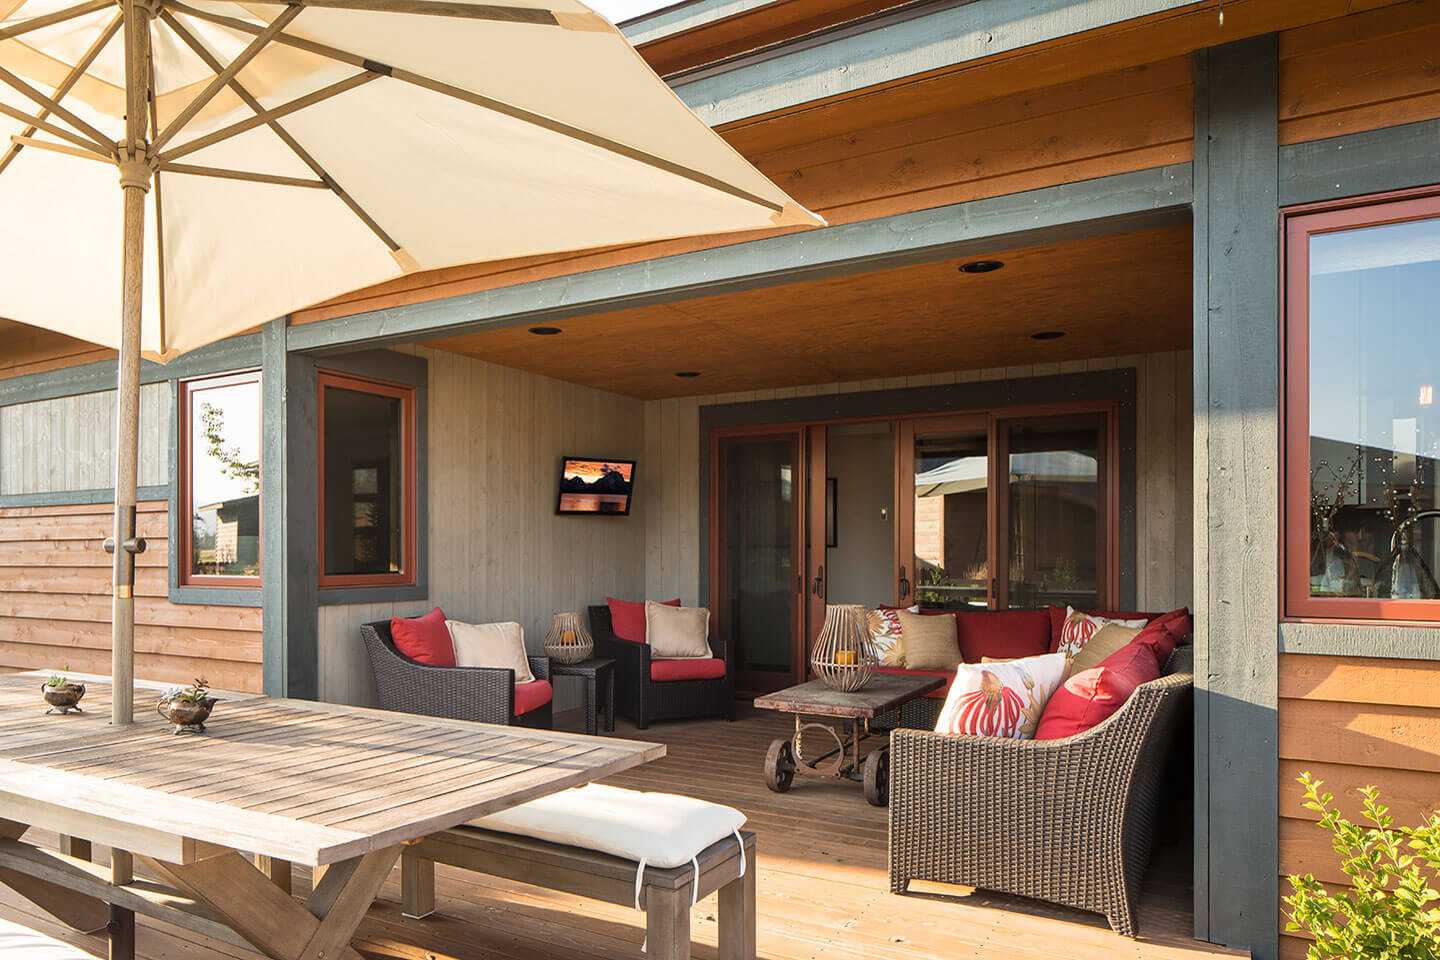 Patio with colorful furnishing, table and umbrella, and tv